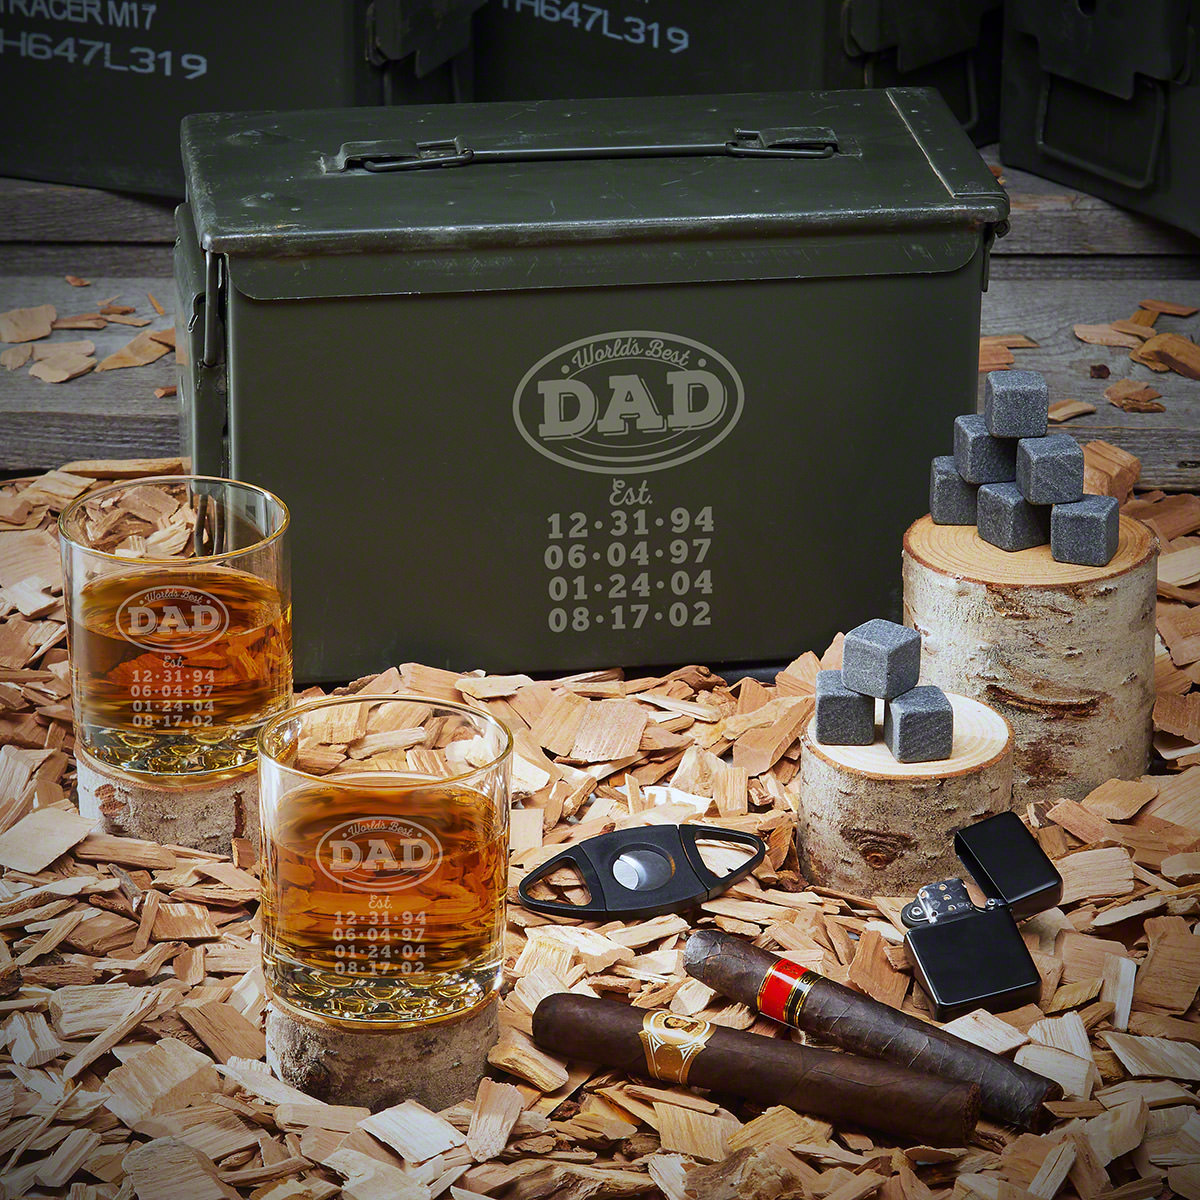 Your dad had his hands full raising a household of kids, but he loved every second of it. Now you can show your appreciation with one of those custom and unique gifts for Dad. A genuine U.S. military 50-caliber ammo can filled to the brim with his favorit #best